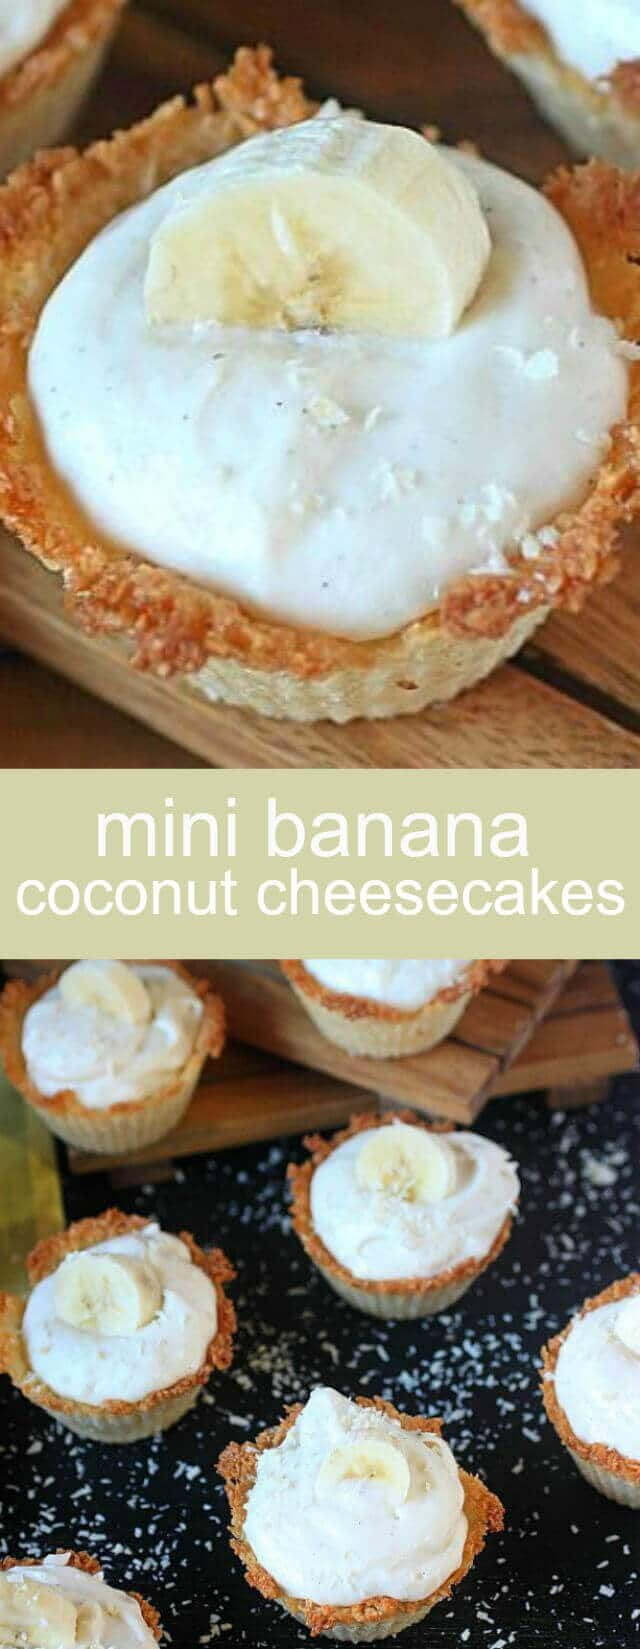 Mini Banana Coconut Cheesecakes {A Fun Hand-Held Dessert} coconut/ banana/ cheesecake A lightly sweetened coconut cup holds a deliciously tropical Banana cheesecake. These Mini Banana Coconut Cheesecakes will feel like a vacation!